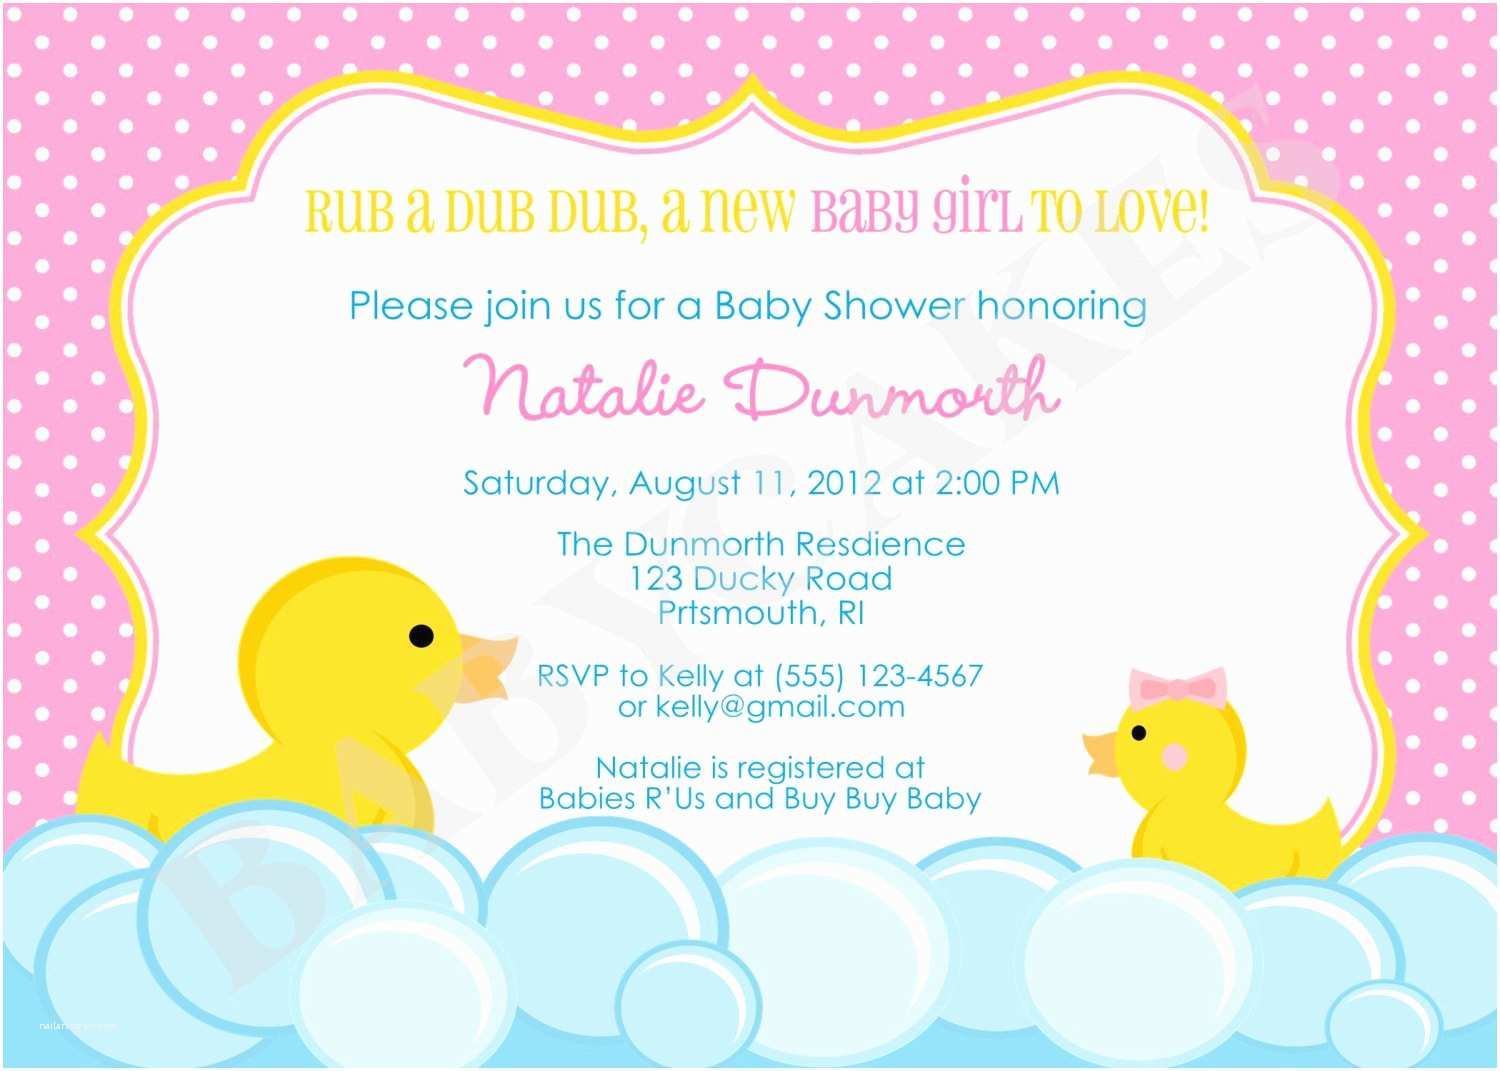 Duck Baby Shower Invitations Rubber Duck Baby Shower Invitation Rubber Duckie Invitation